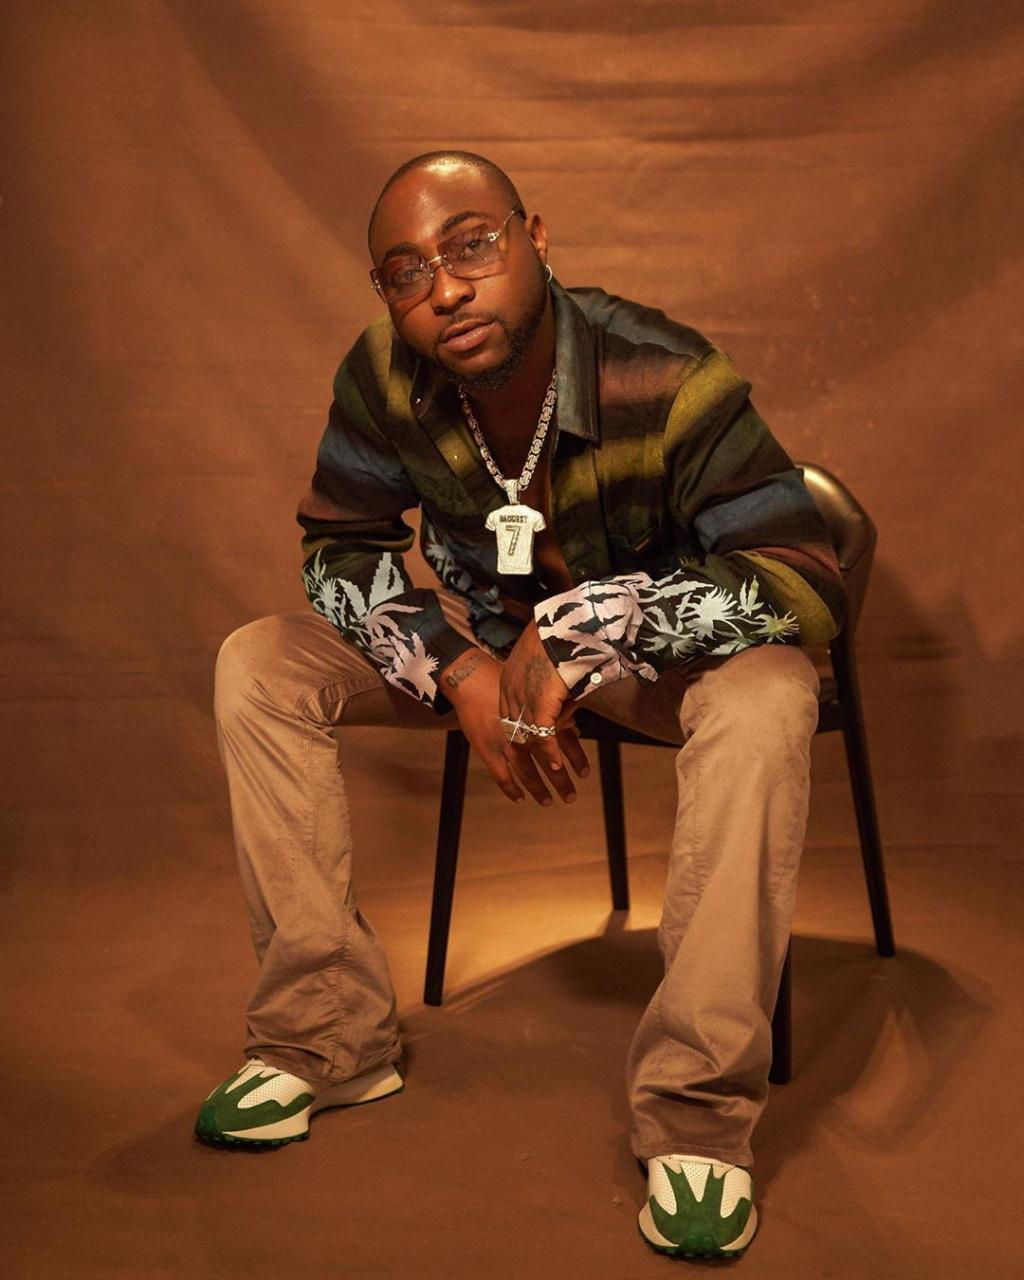 See Davido Pot Belly That Is Making Fans Worry About His Health